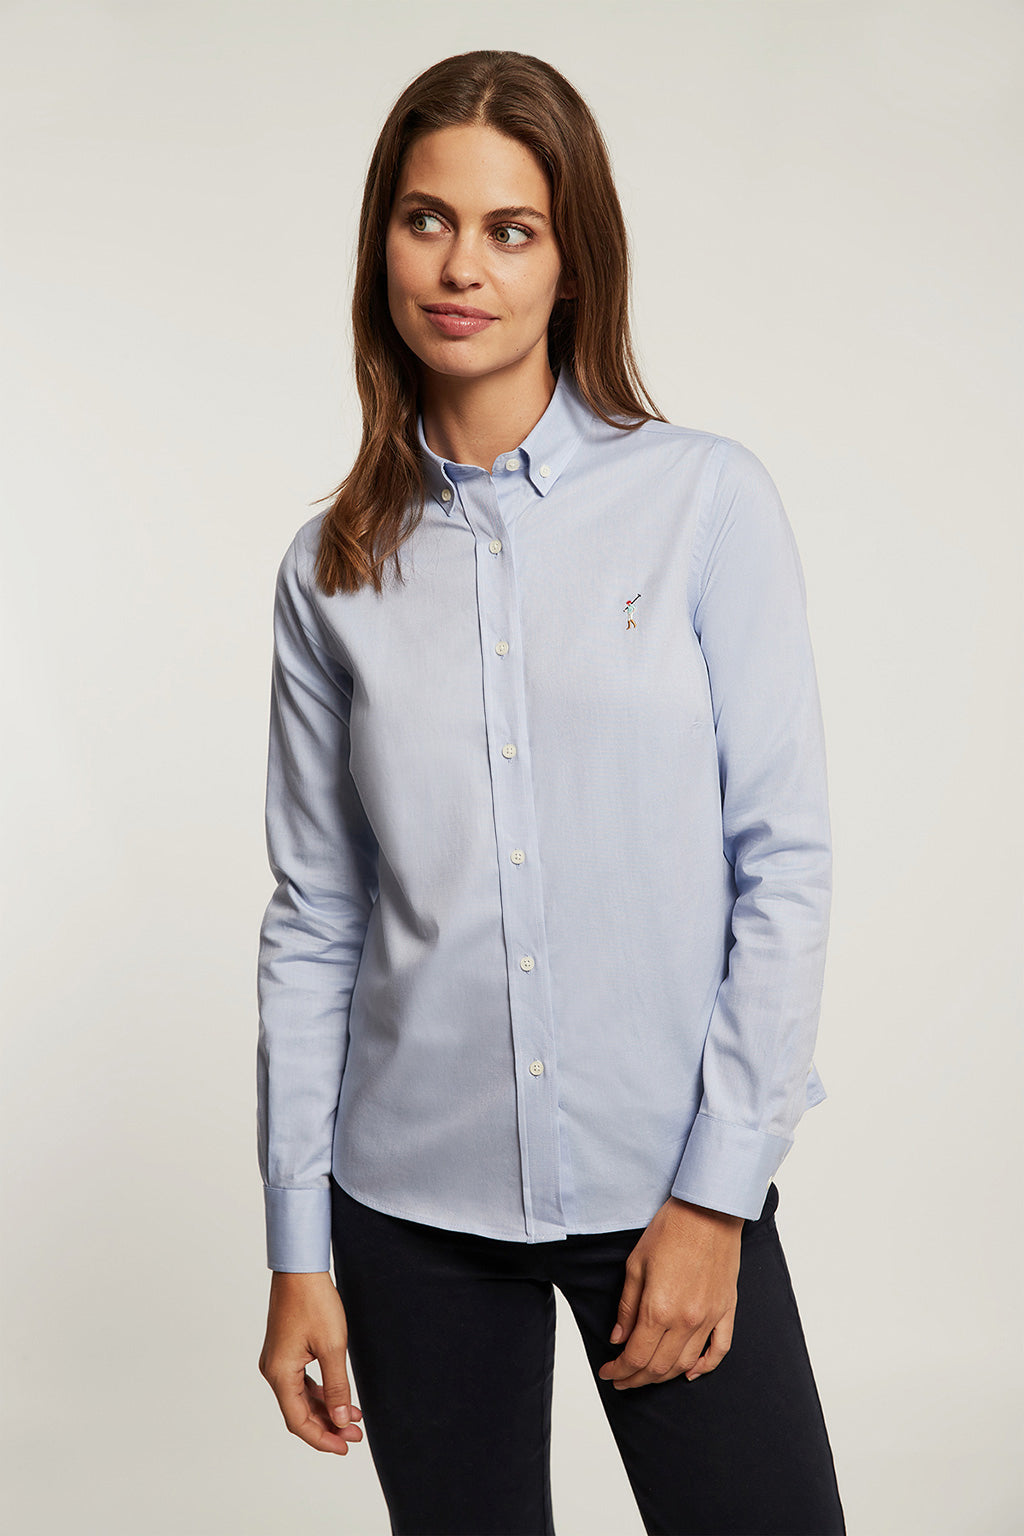 MISS RIGBY GO COLOR OXFORD sky blue Shirt